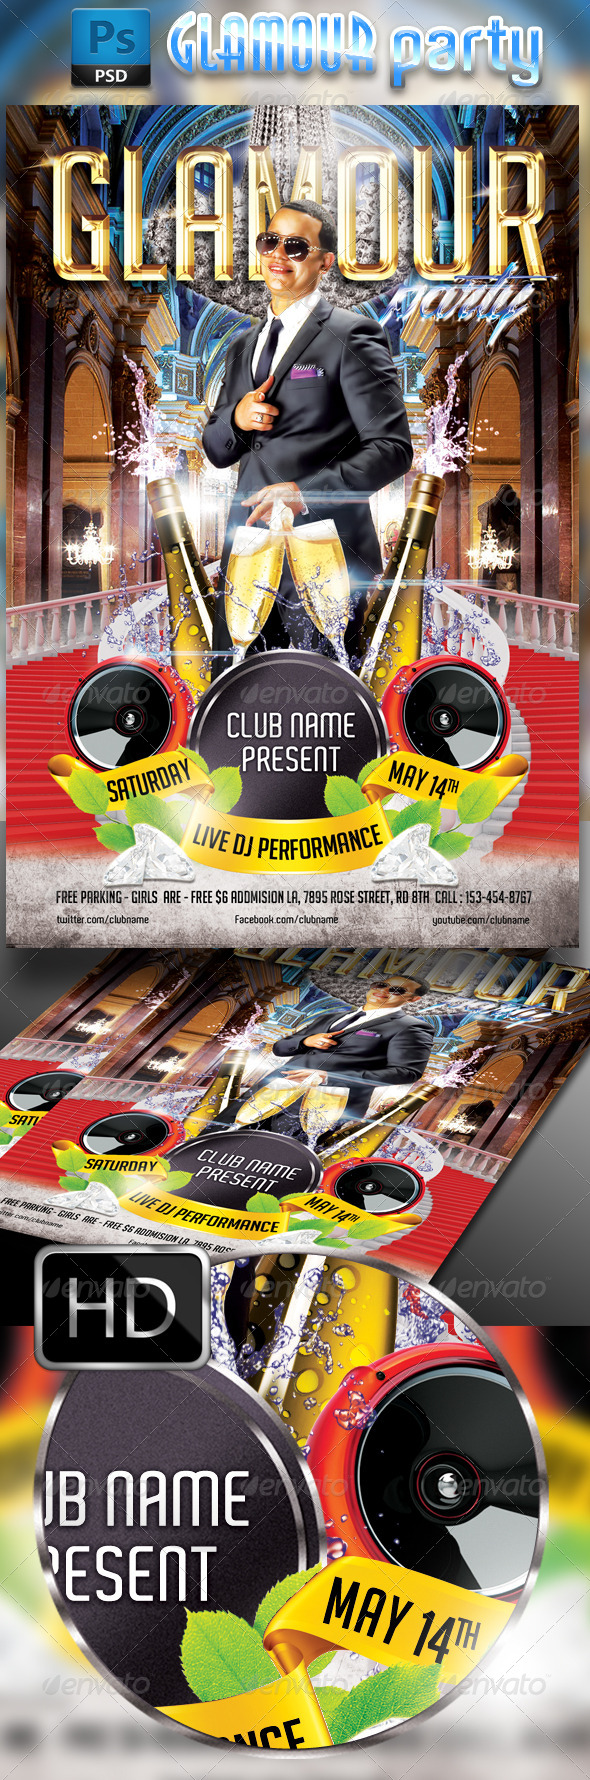 GraphicRiver Glamour Party 7669417